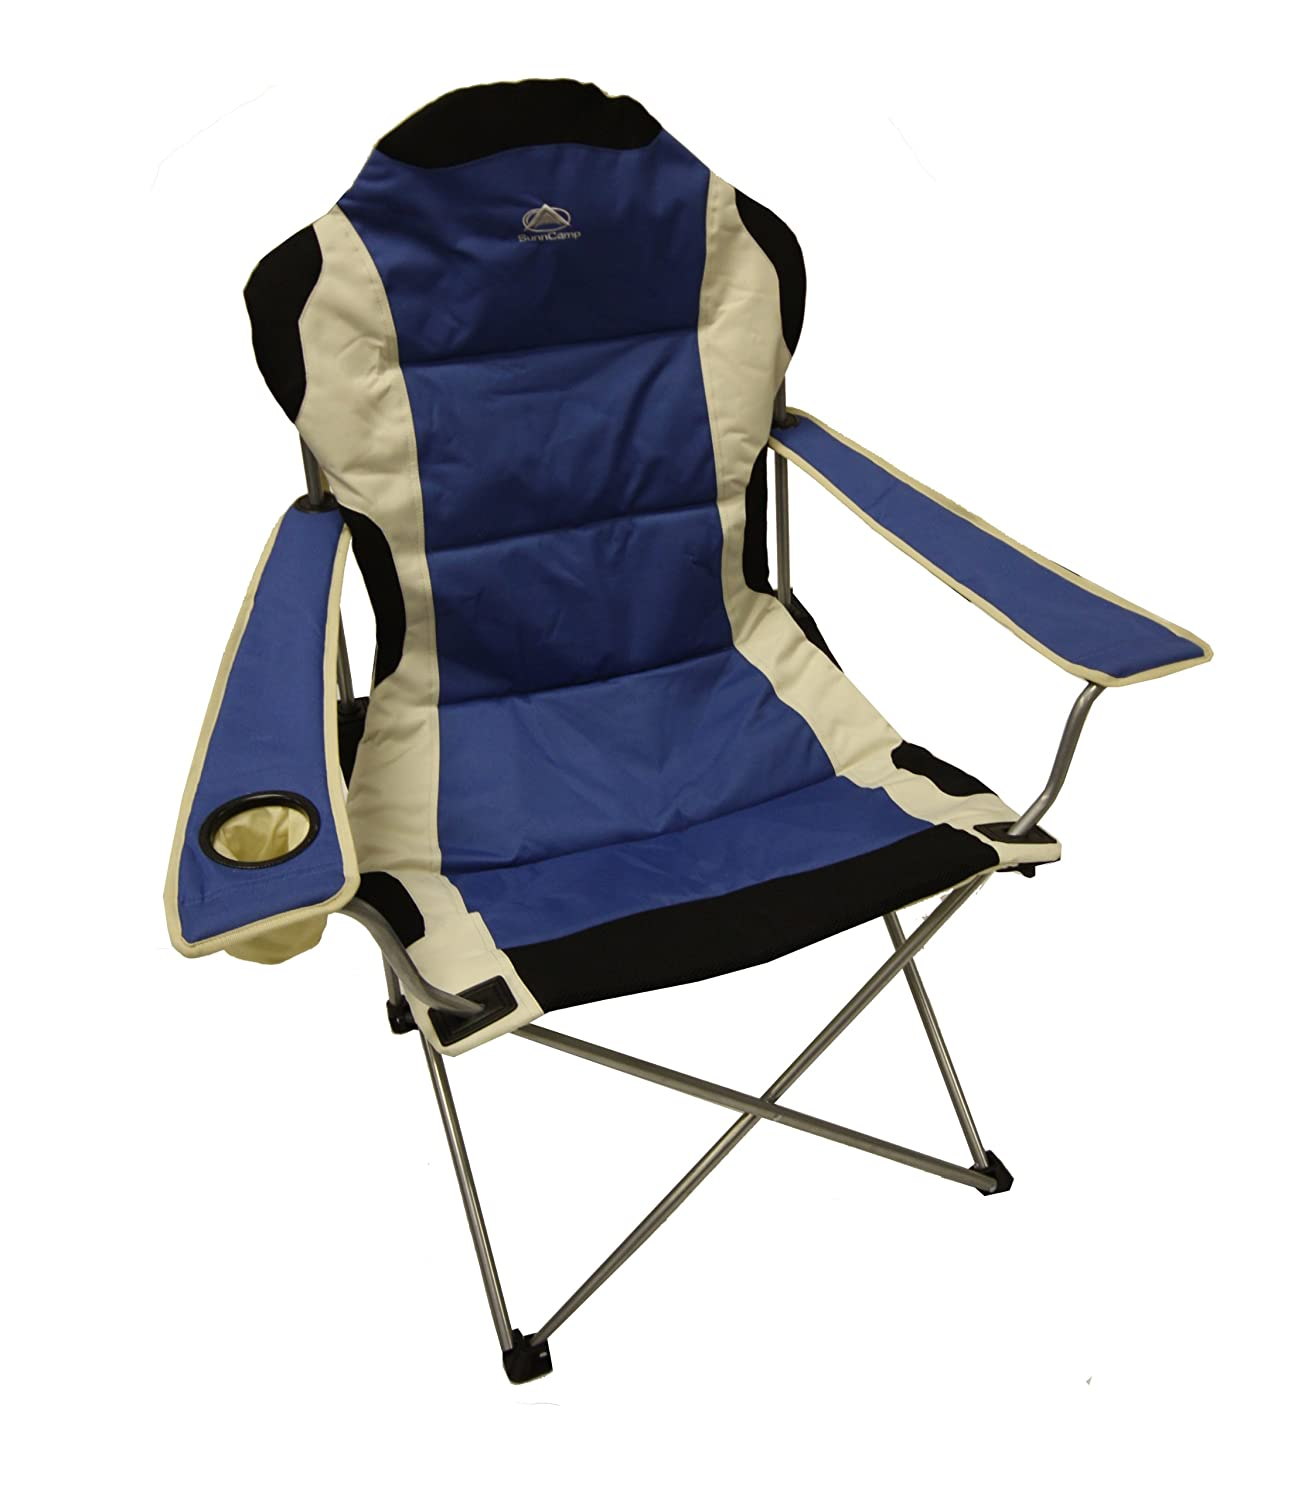 Sunncamp Deluxe Steel Super Folding Armchair Blue Amazon